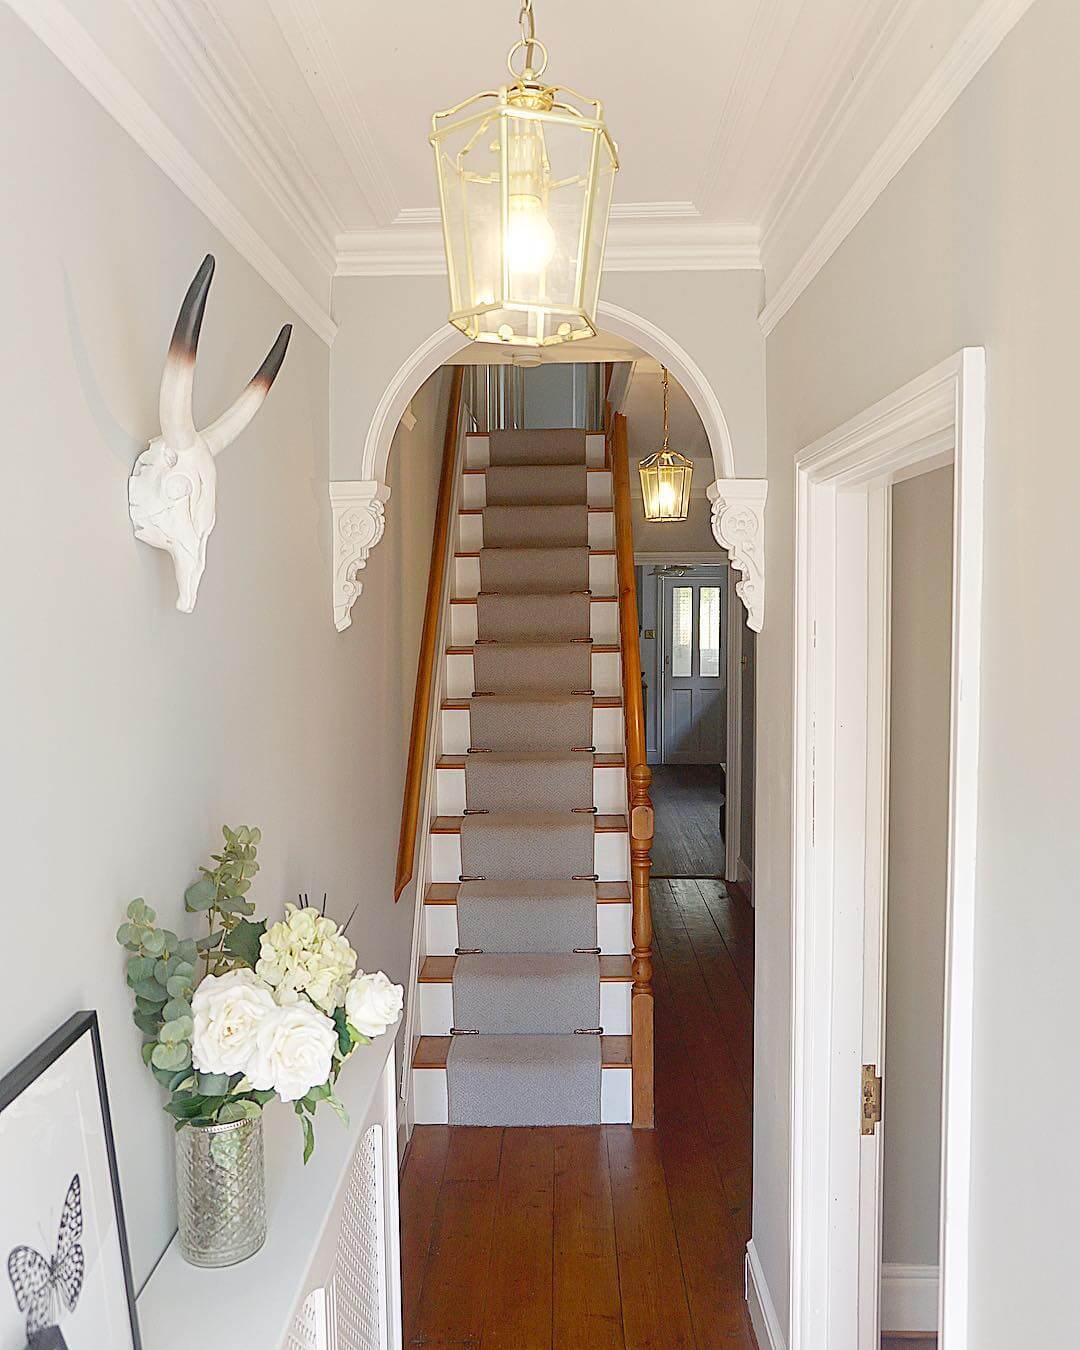 This entrance hallway is classy,fresh and welcoming. Find out more on www.lovethome.co.uk photo credit https://www.instagram.com/end_of_the_row/